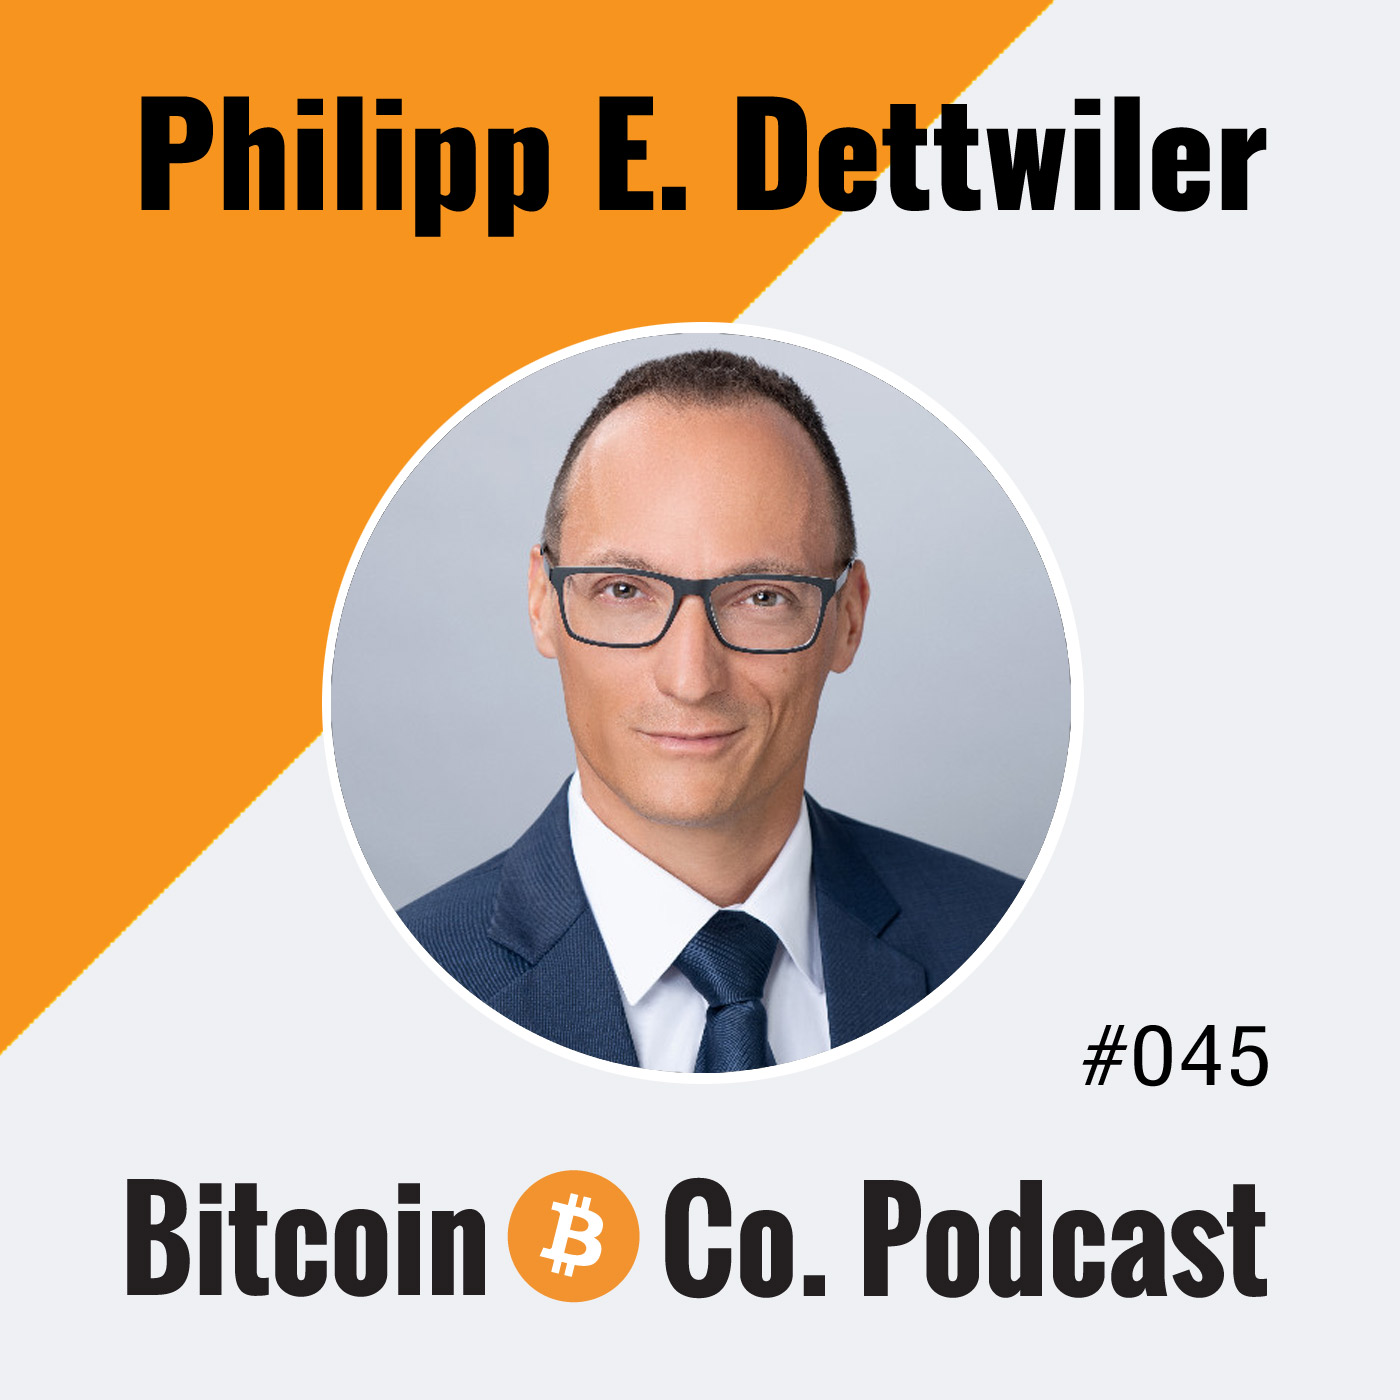 Philipp E. Dettwiler: Merging Traditional Banking With Bitcoin and Digital Assets